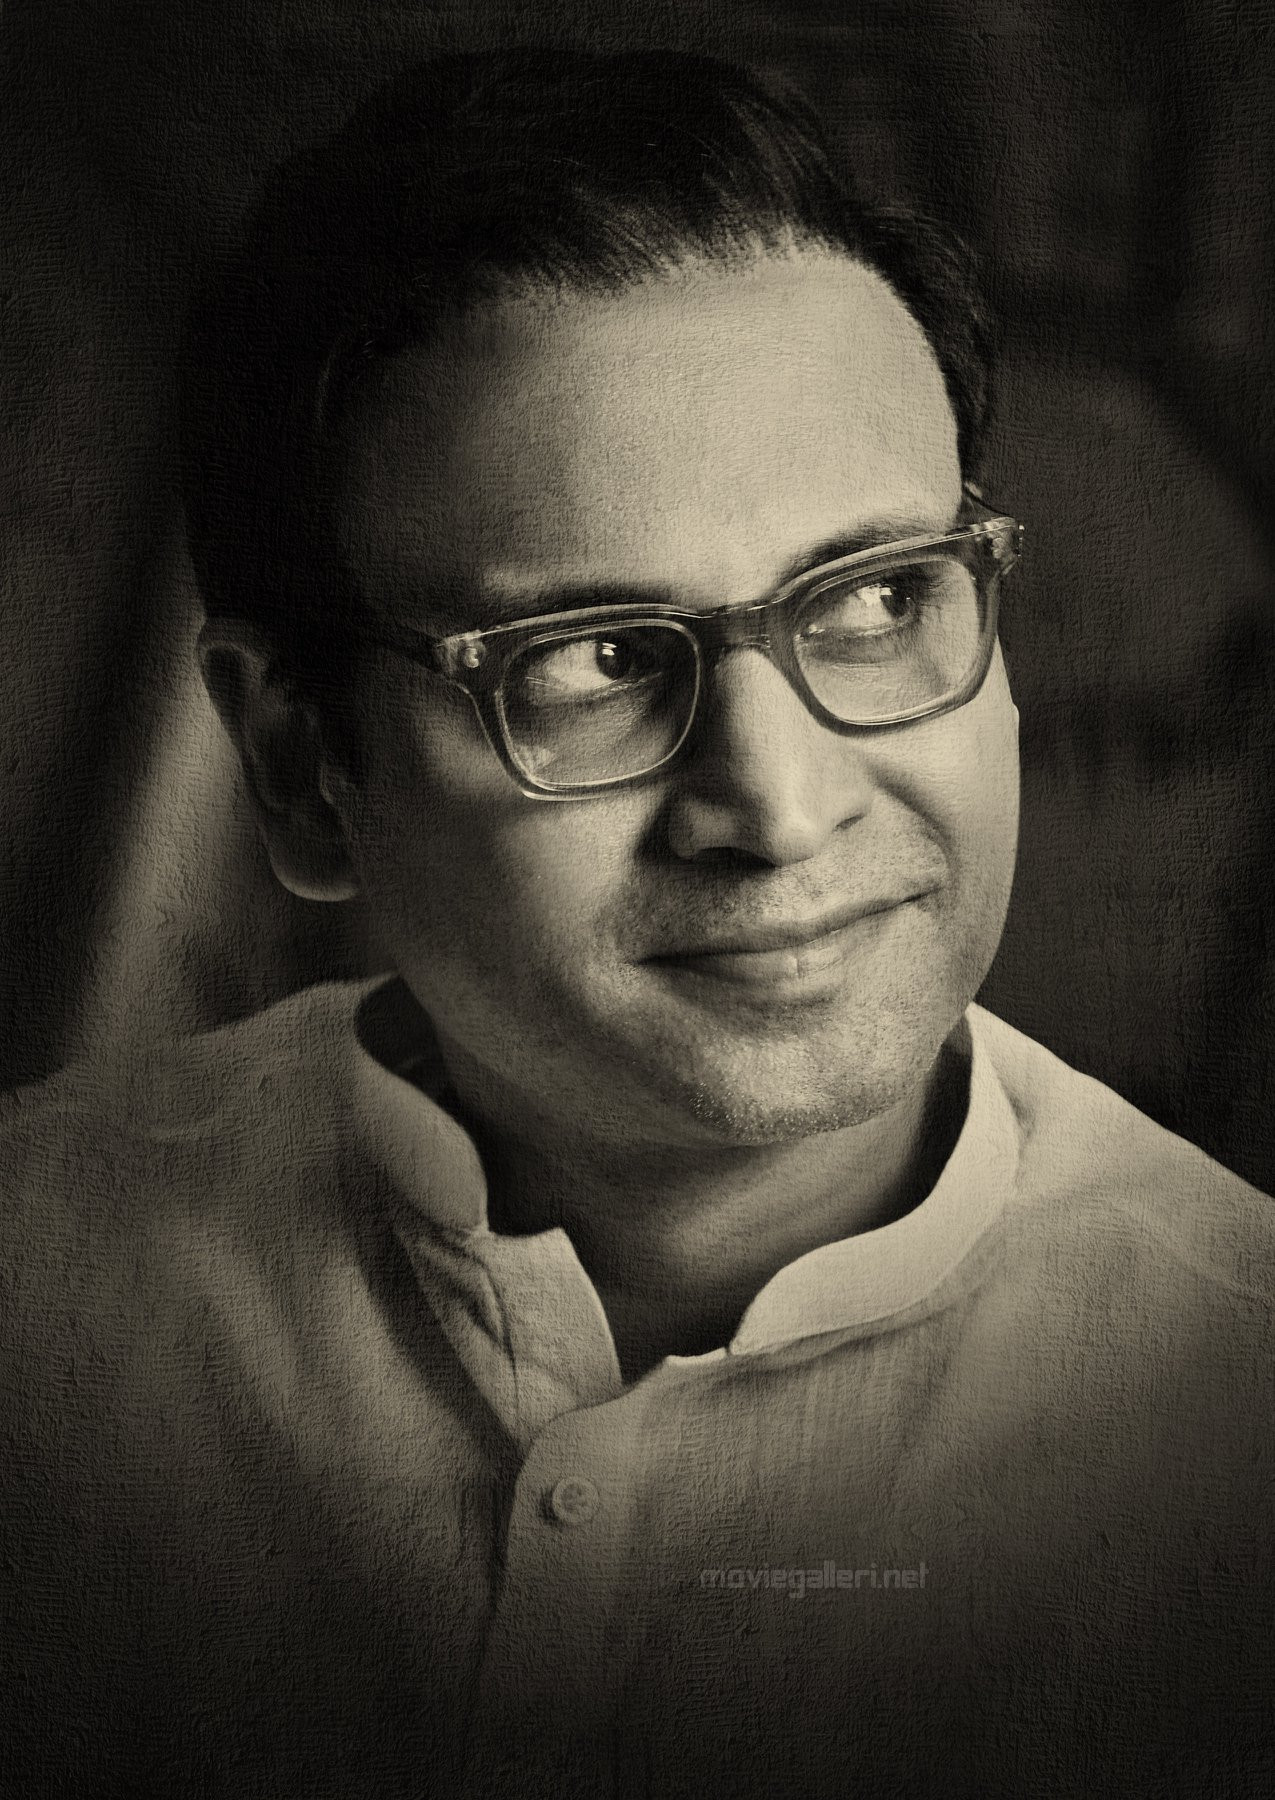 Actor Sumanth as Akkineni Nageswara Rao in NTR Biopic